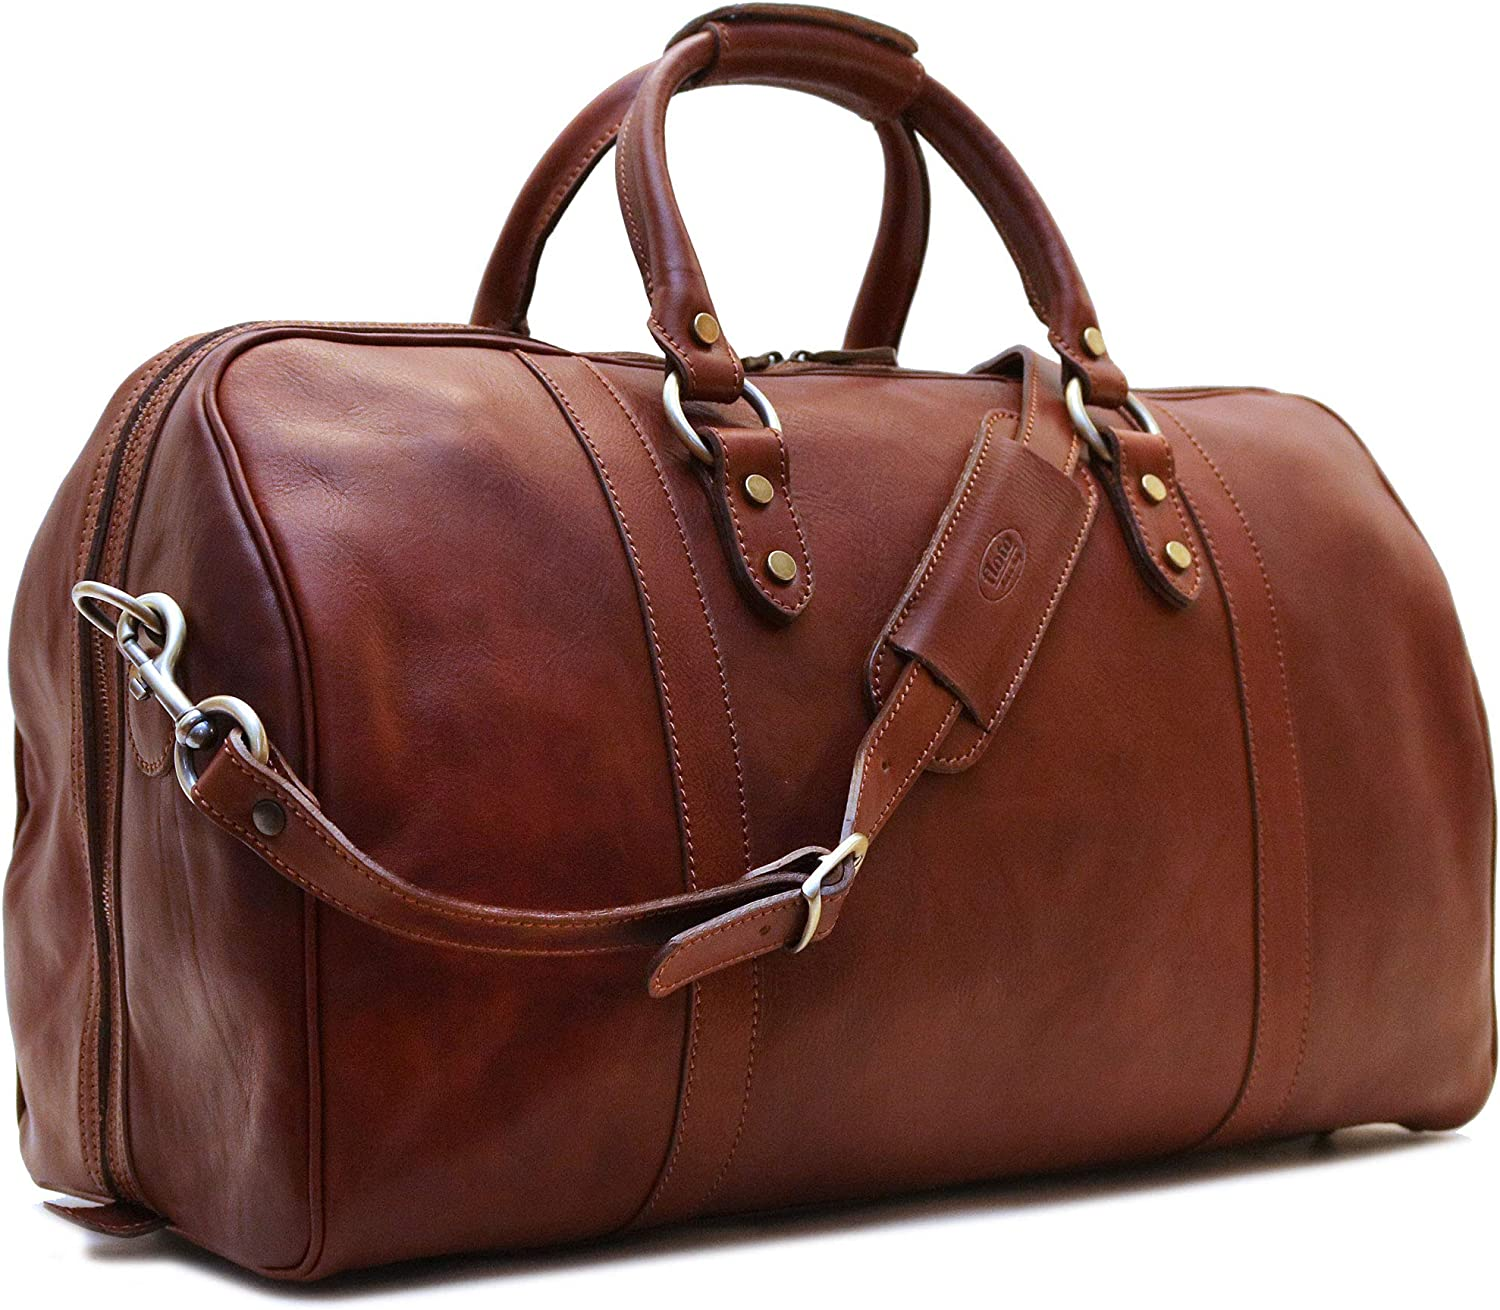 Floto Roma Cabin Bag Saddle Brown Italian Leather Weekender Duffle